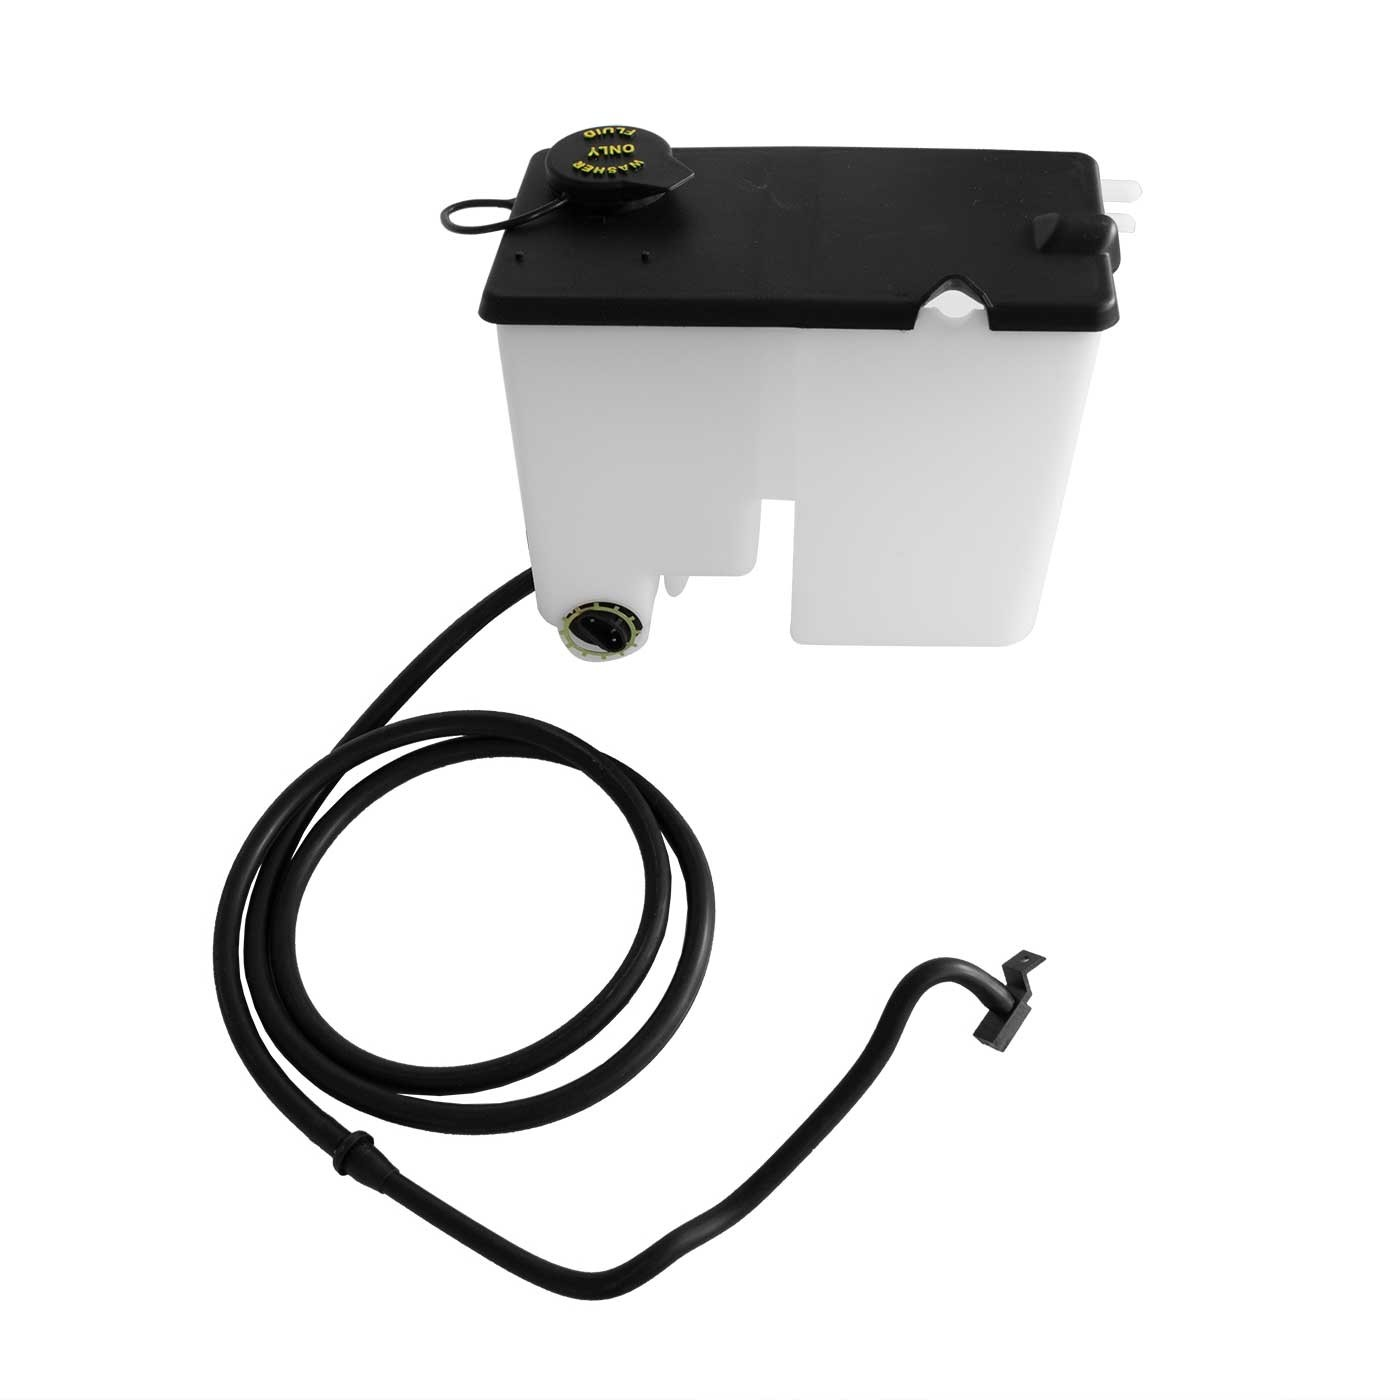 1979-1985 Ford Mustang Windshield Washer Radiator Overflow Complete Kit w/ Hoses & Nozzle